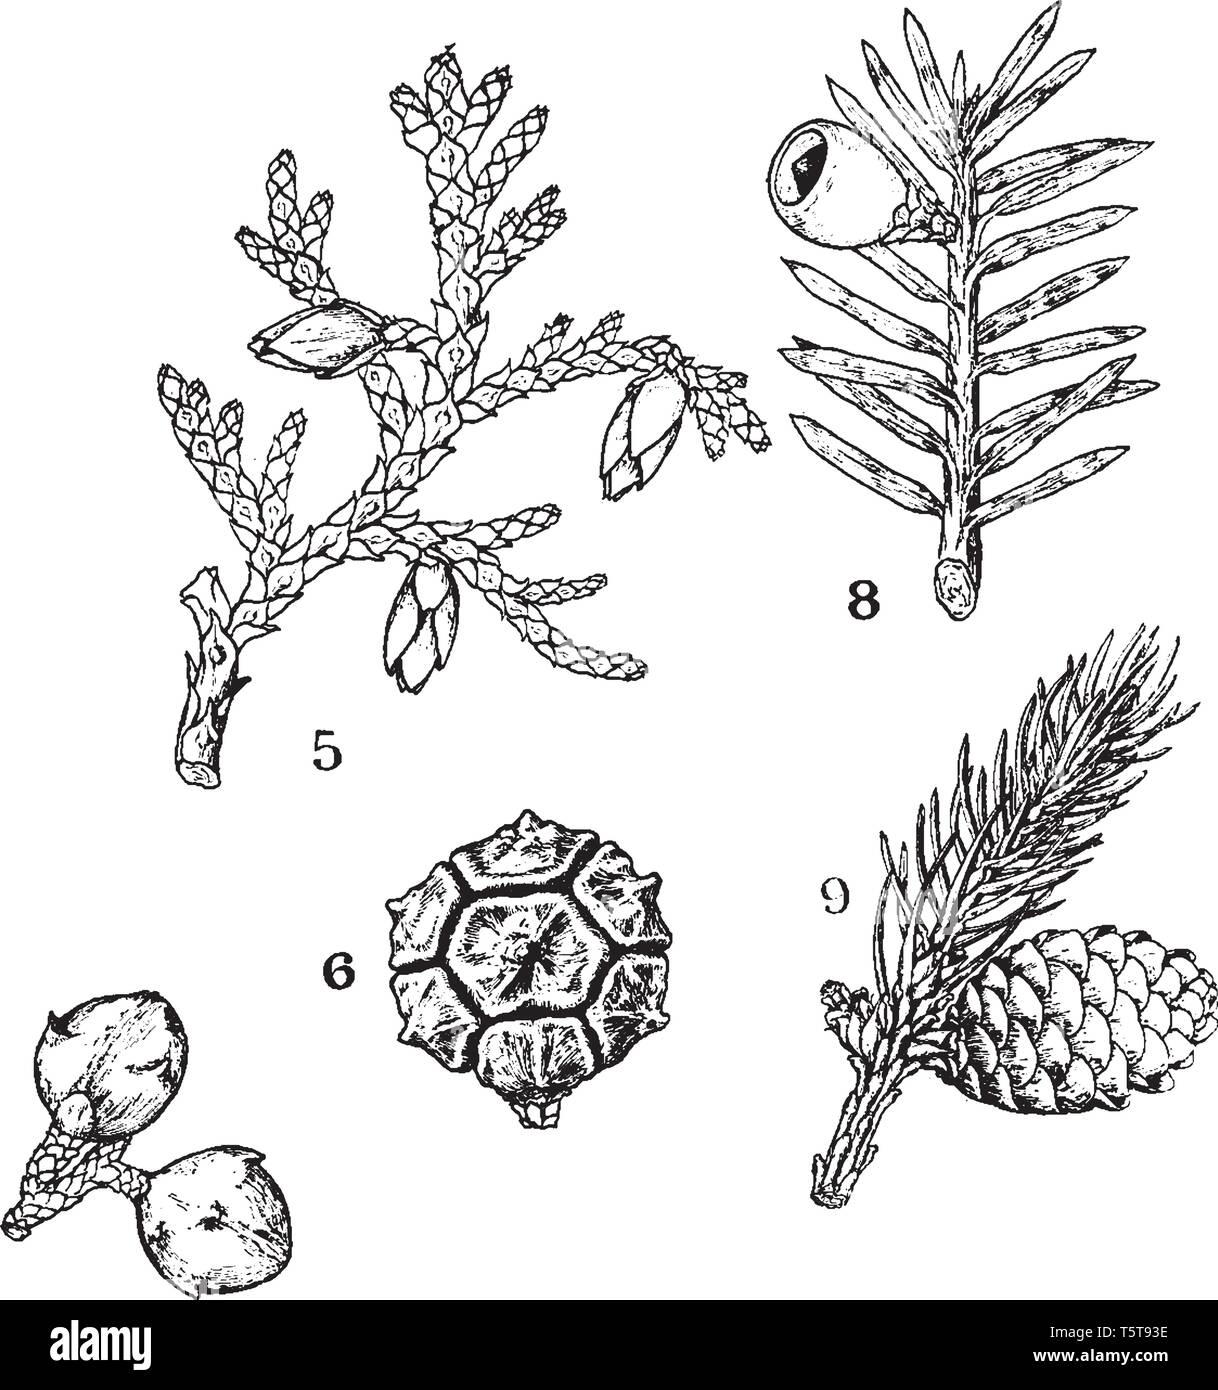 A picture showing some common examples of Pinales. The picture shows Thuja, Strobilus, branch of Taxus, Picea, etc, vintage line drawing or engraving  - Stock Image